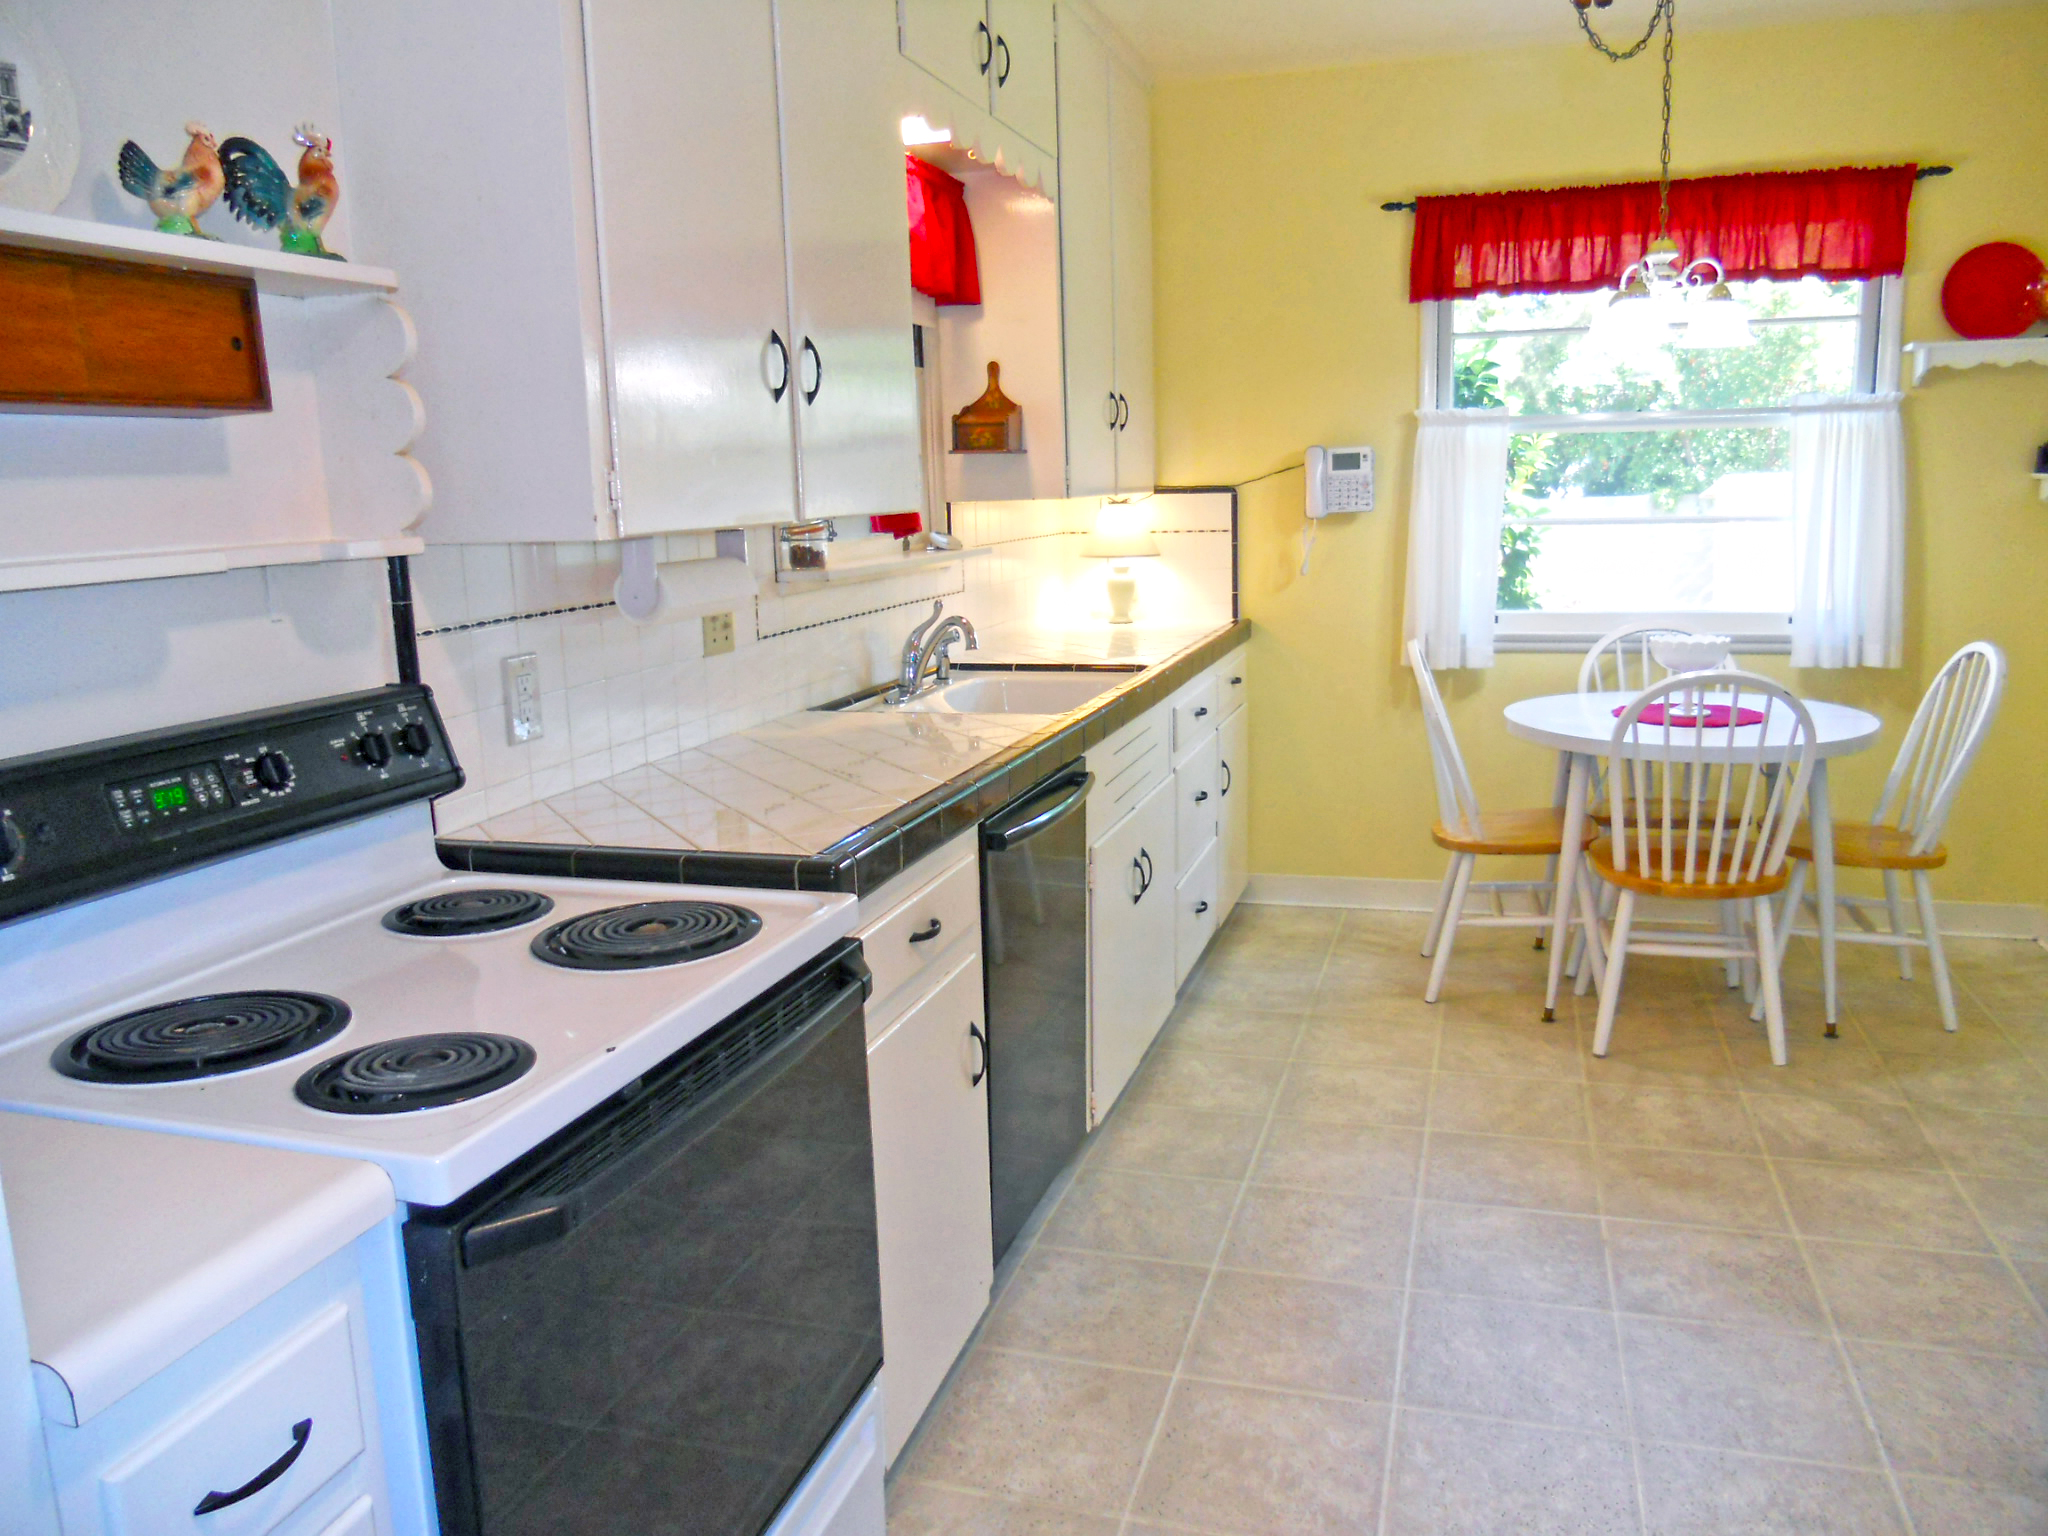 Spectacularly cute kitchen! It's bright, it's clean, and it's super spacious!